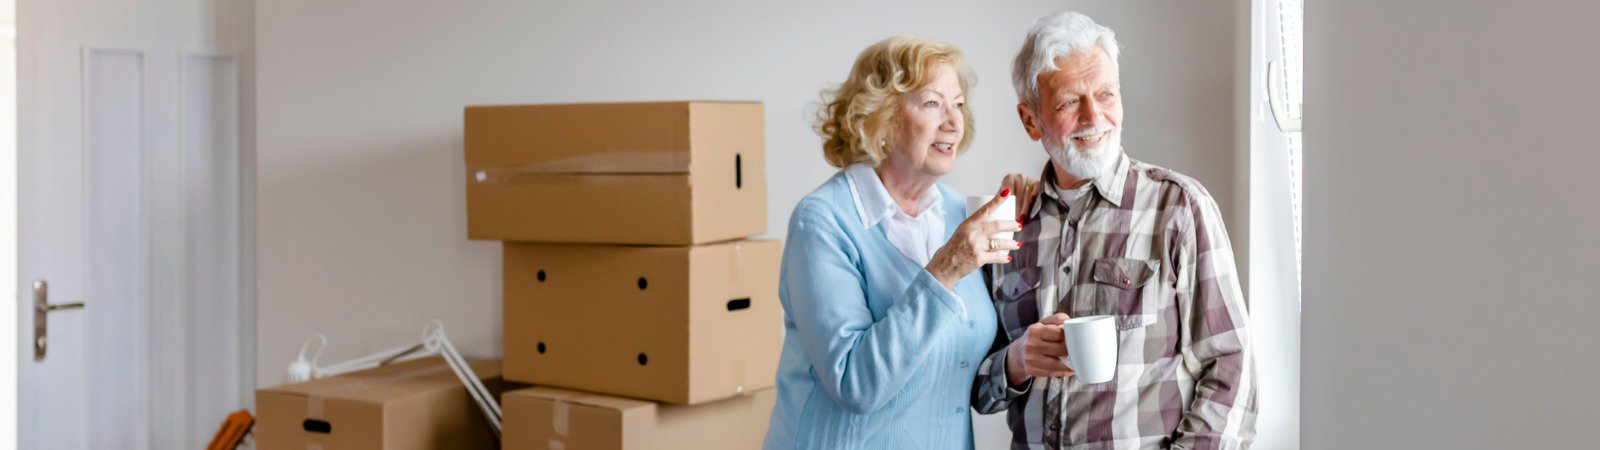 senior woman and man next to moving boxes